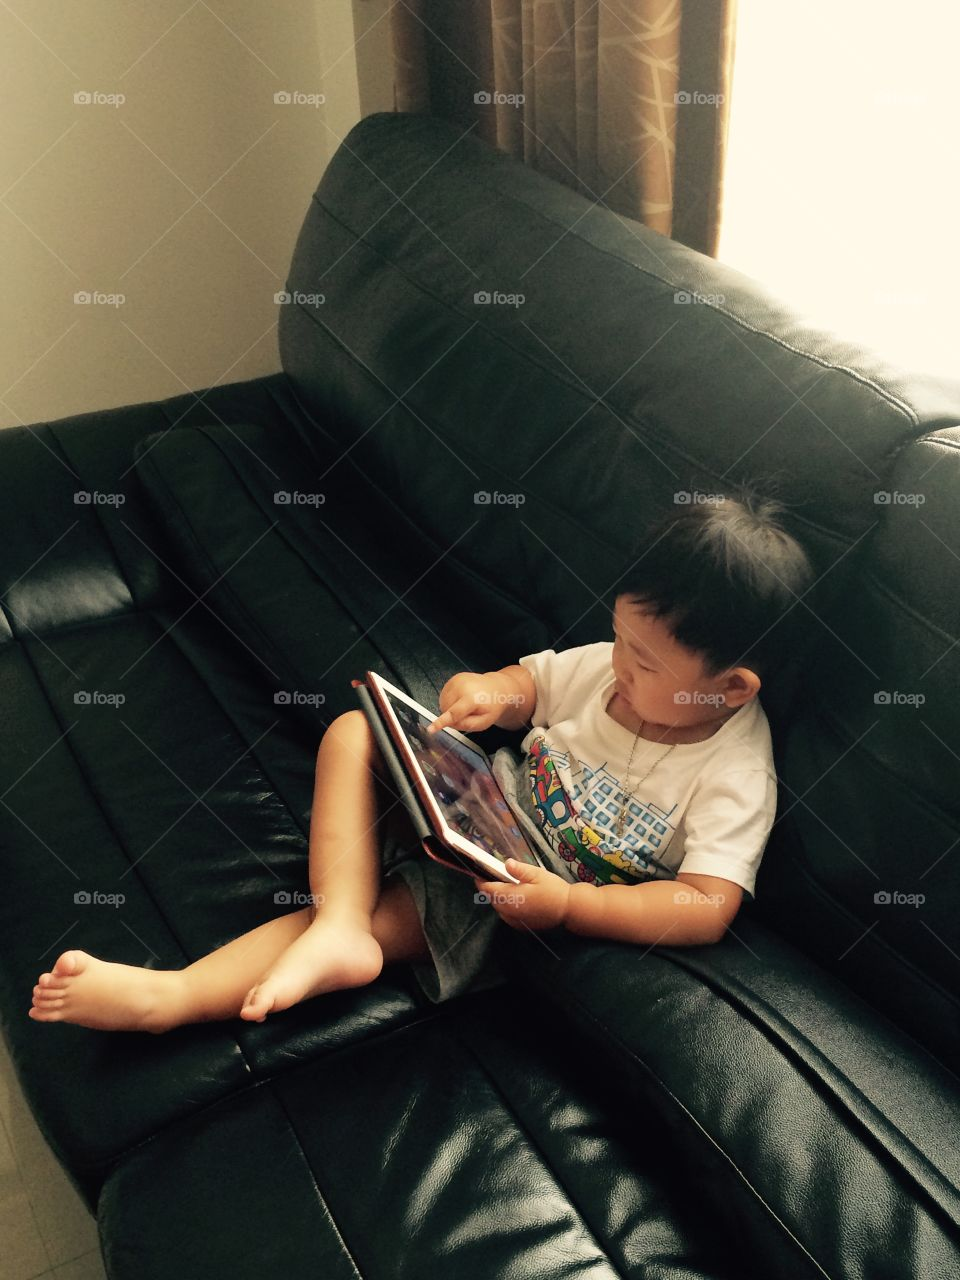 The boy with technology